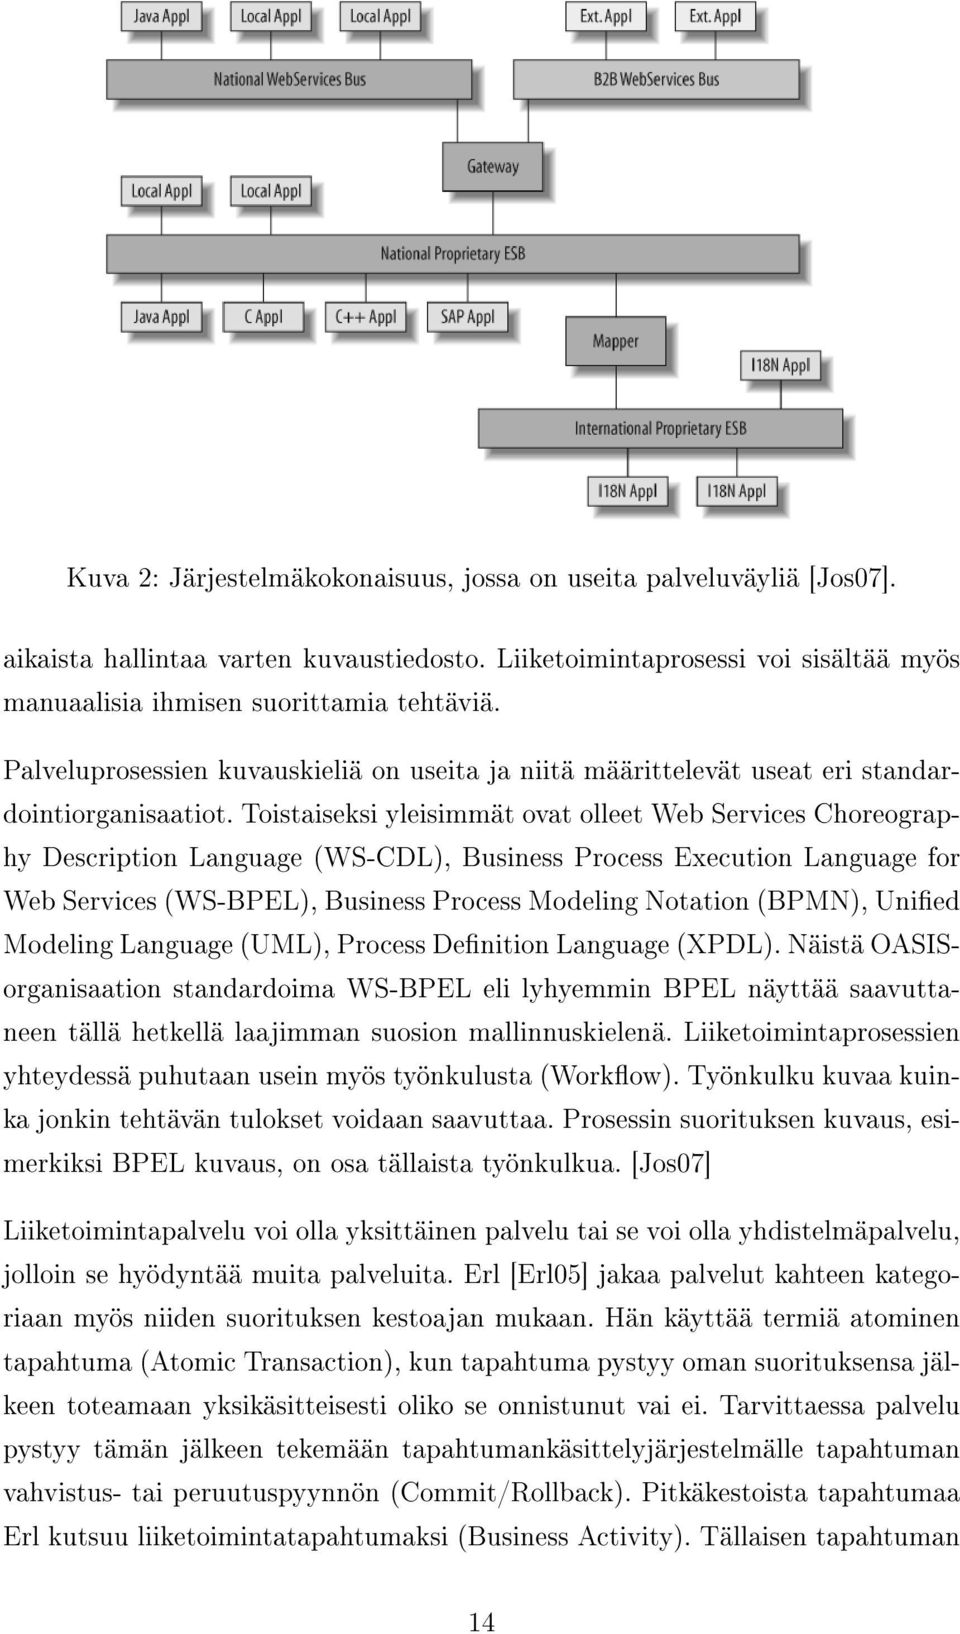 Toistaiseksi yleisimmät ovat olleet Web Services Choreography Description Language (WS-CDL), Business Process Execution Language for Web Services (WS-BPEL), Business Process Modeling Notation (BPMN),